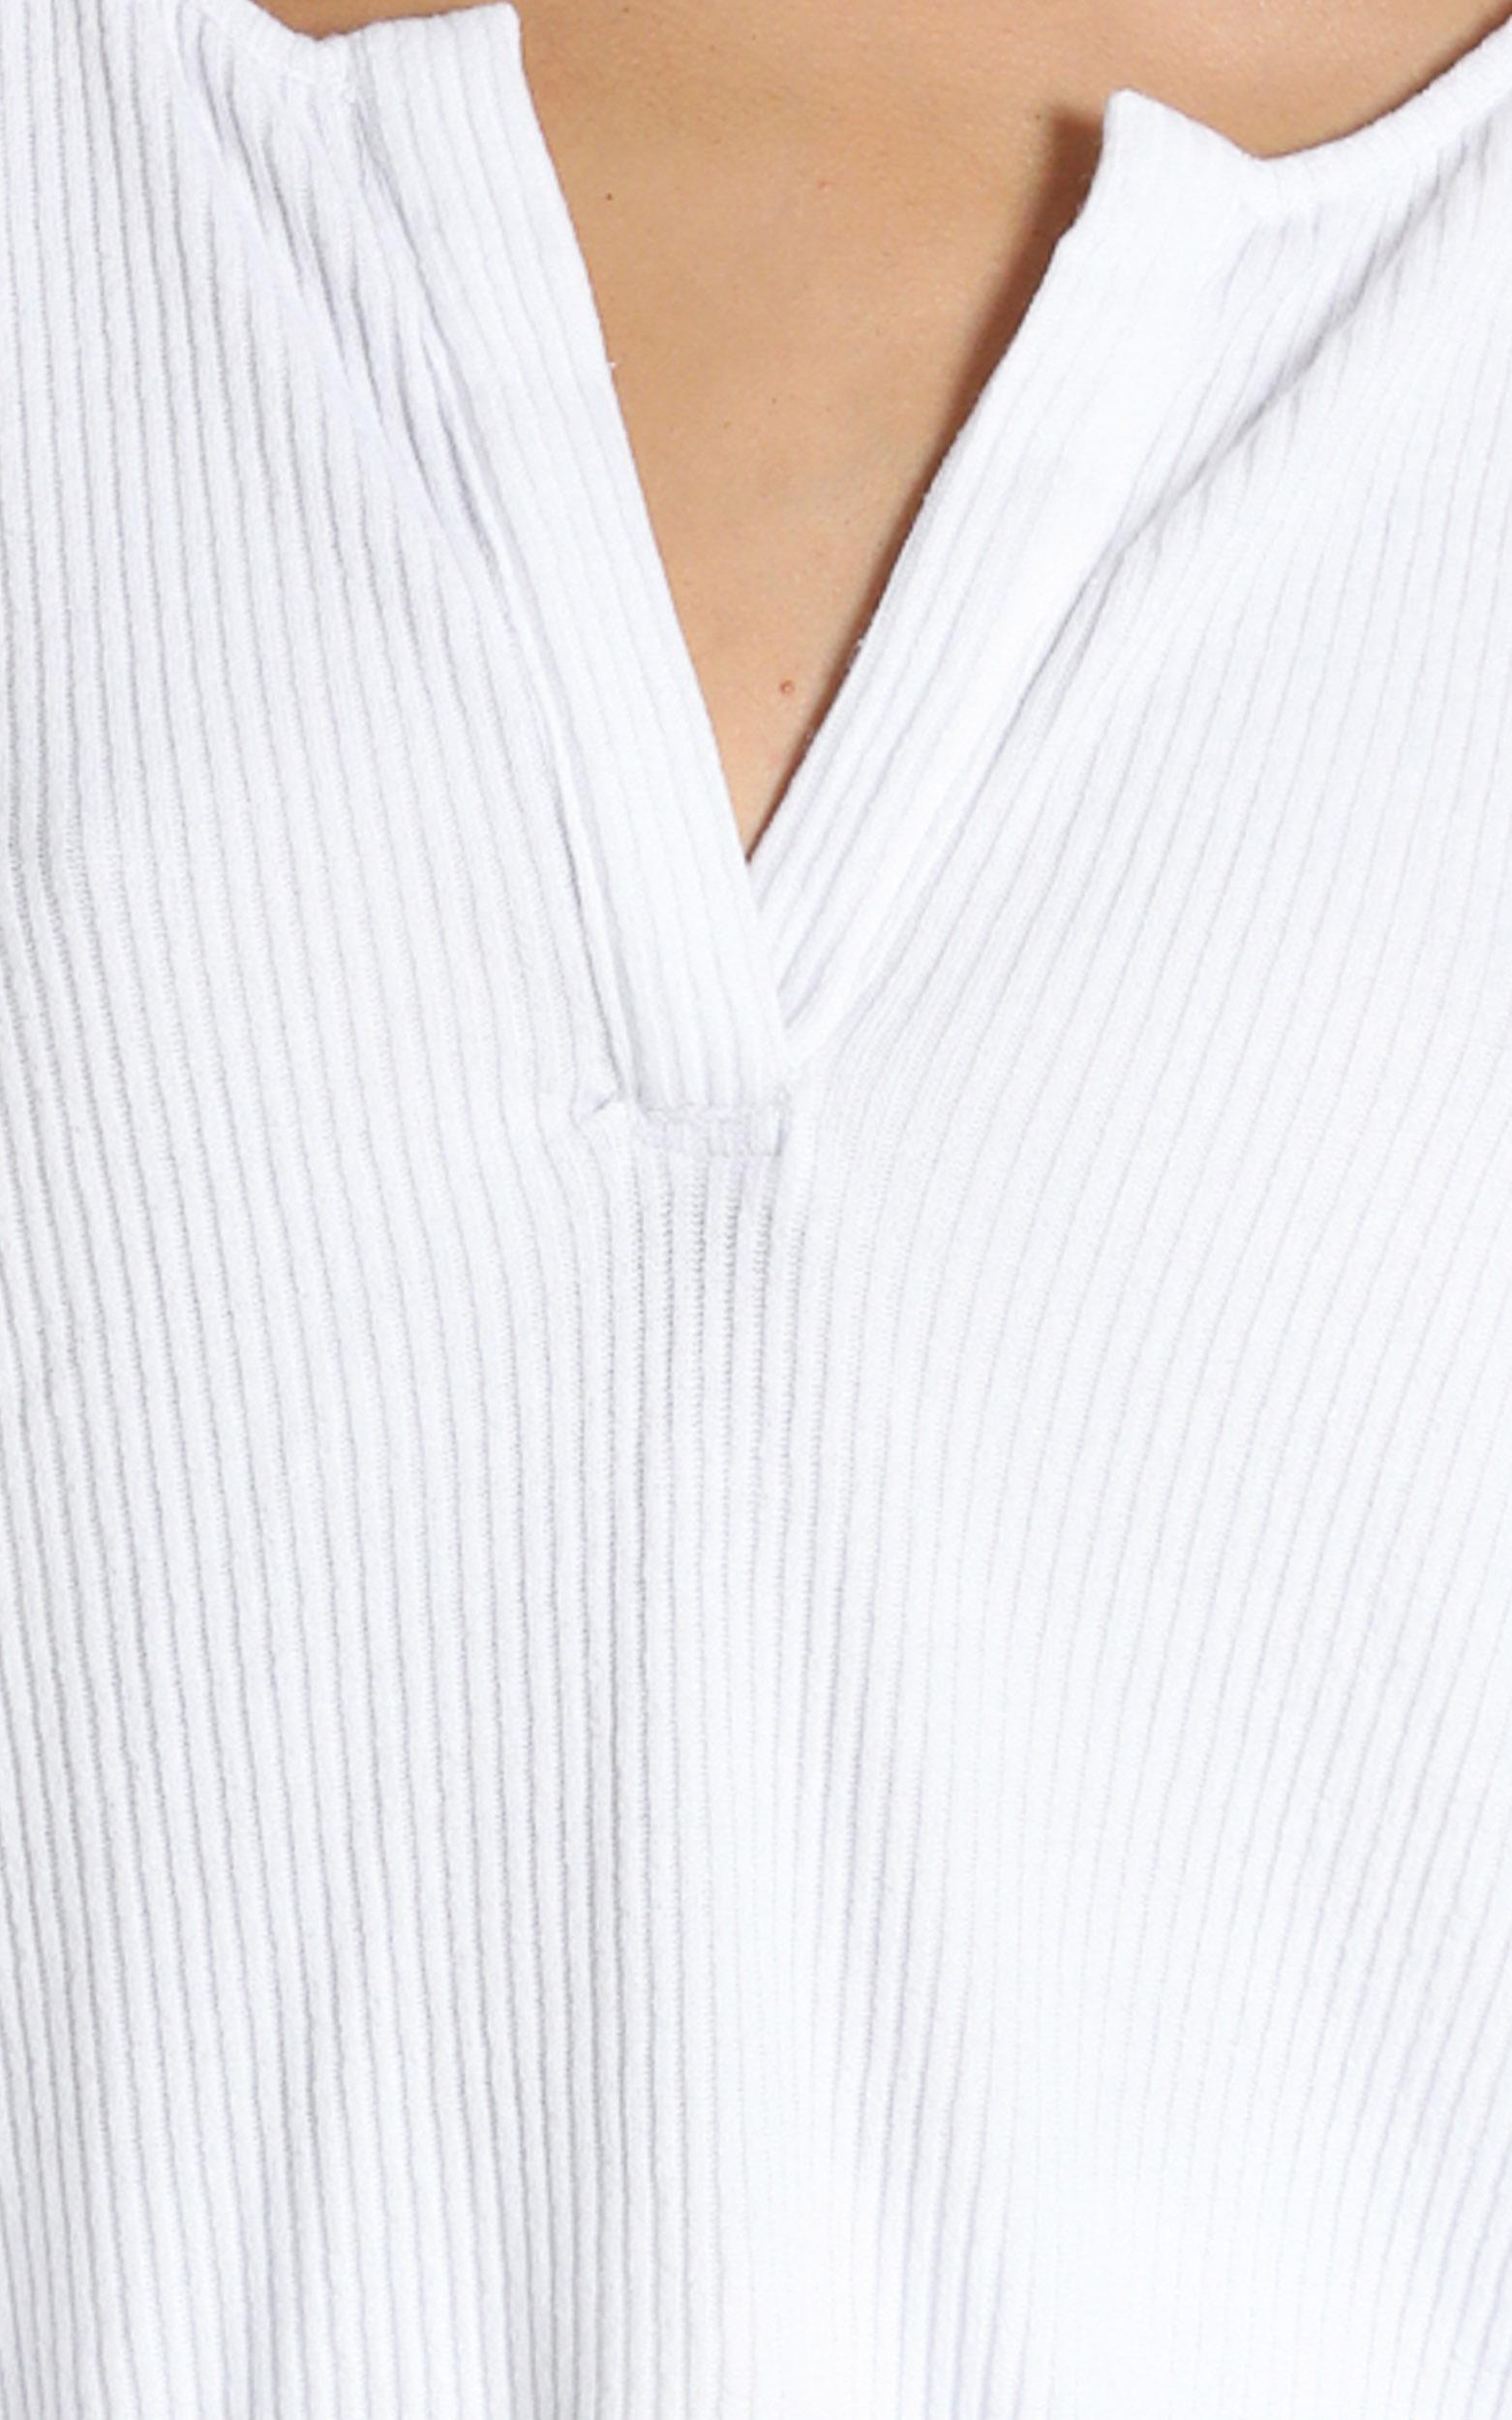 Billie Top in White, White, hi-res image number null